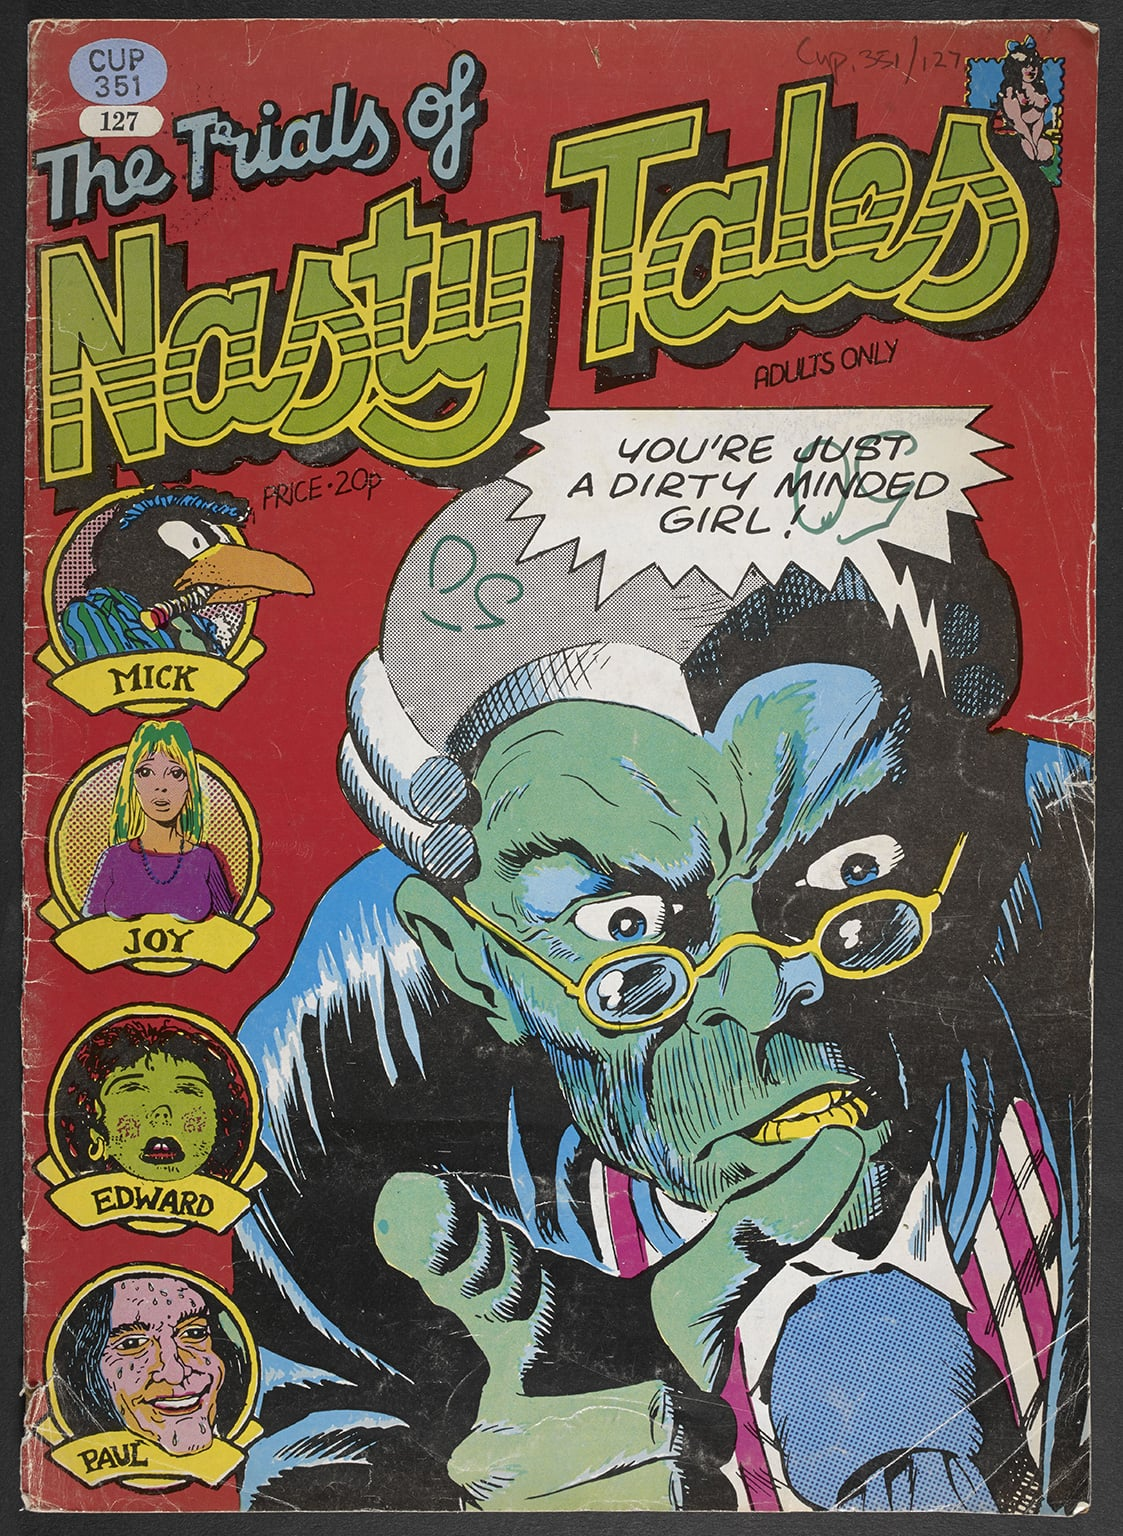 5. Comics Unmasked: Art and Anarchy in the UK at British Library. 50% off with National Art Pass - The Trials of Nasty Tales, 1973. Cover art (c) Dave Gibbons